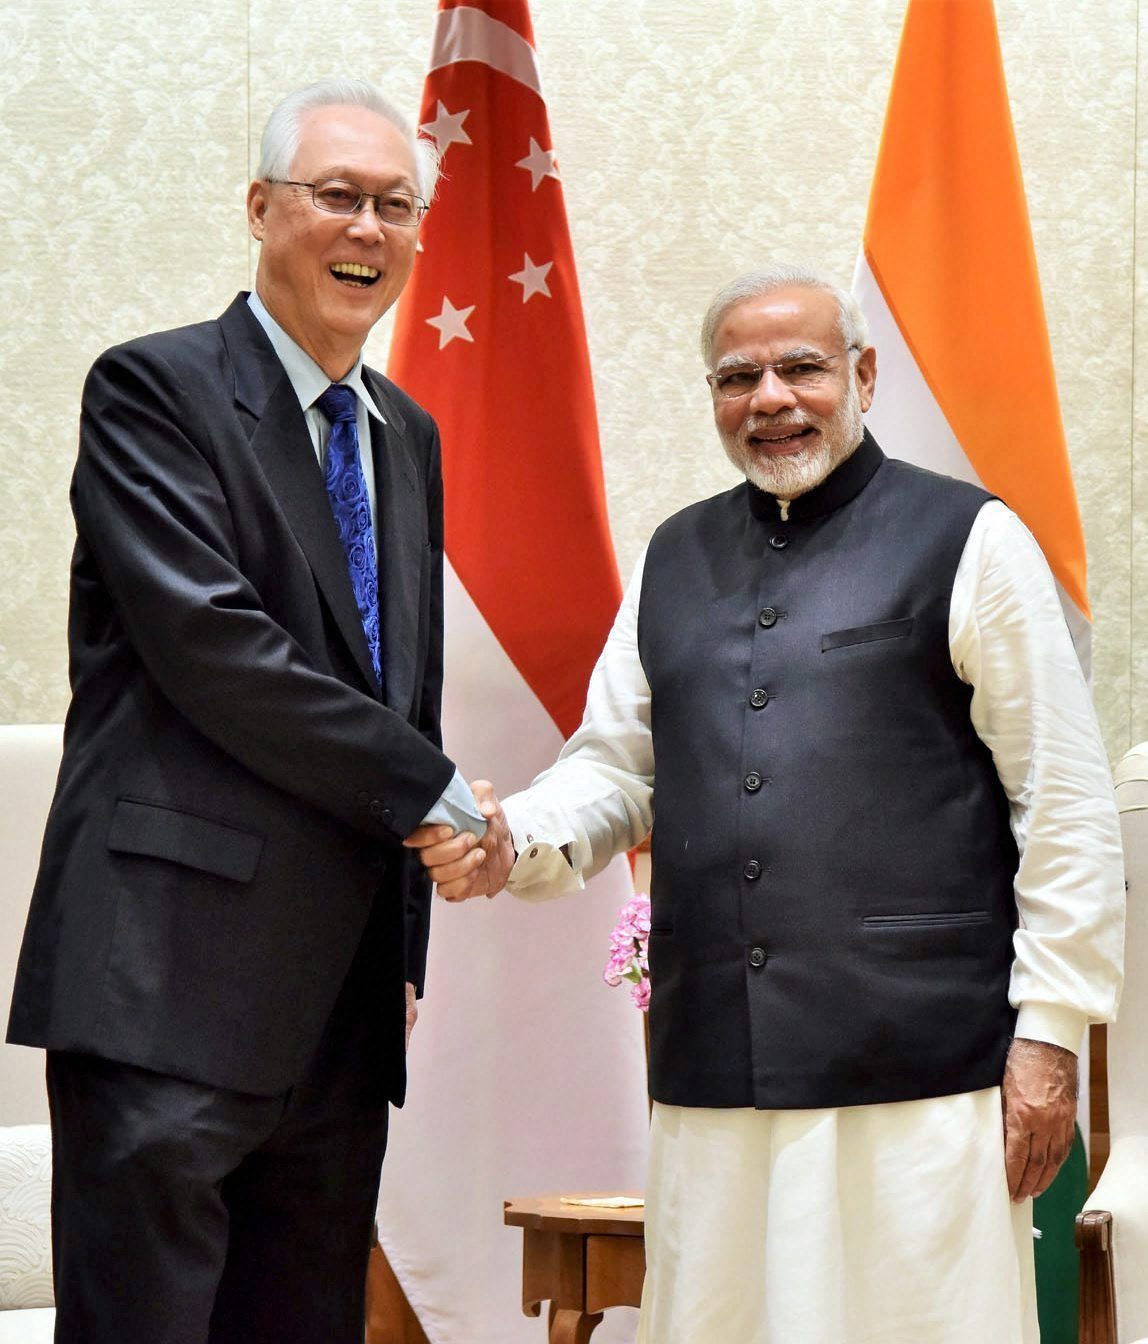 Former minister of Singapore Goh Chok Tong meeting Indian Prime Minister Narendra Modi yesterday in Delhi.